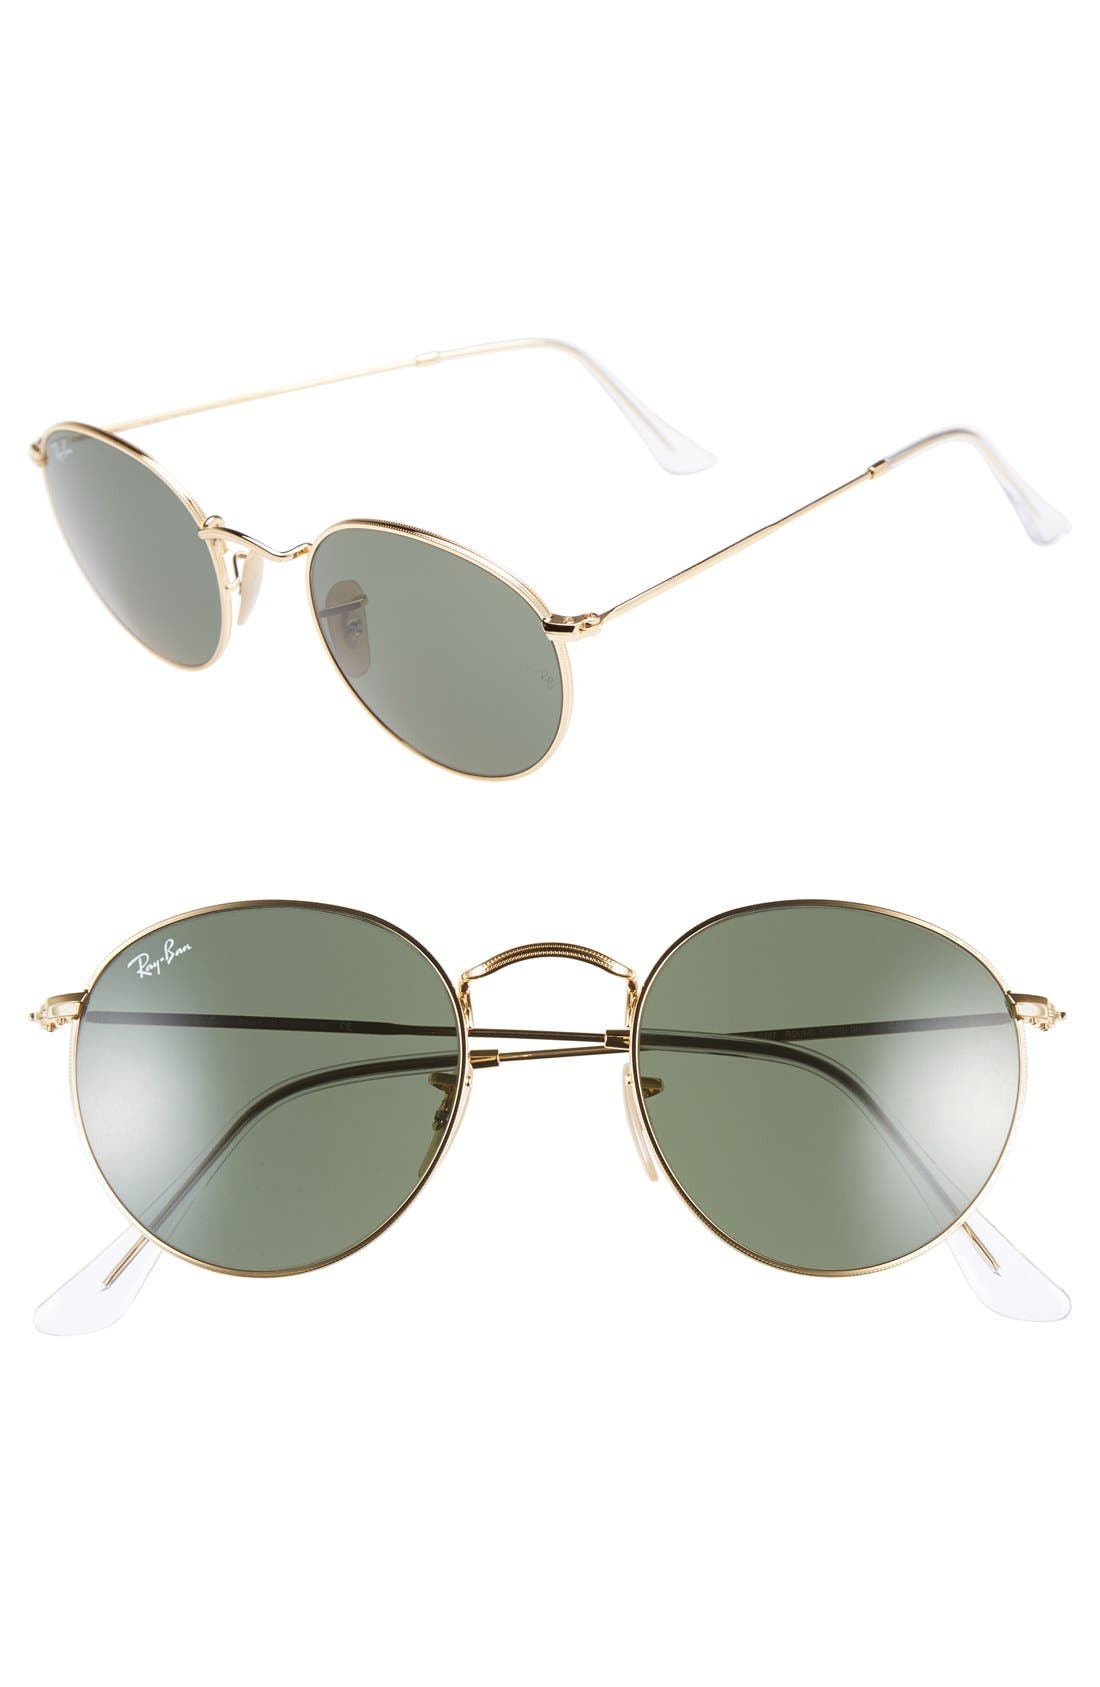 ray ban round metal sunglasses sale